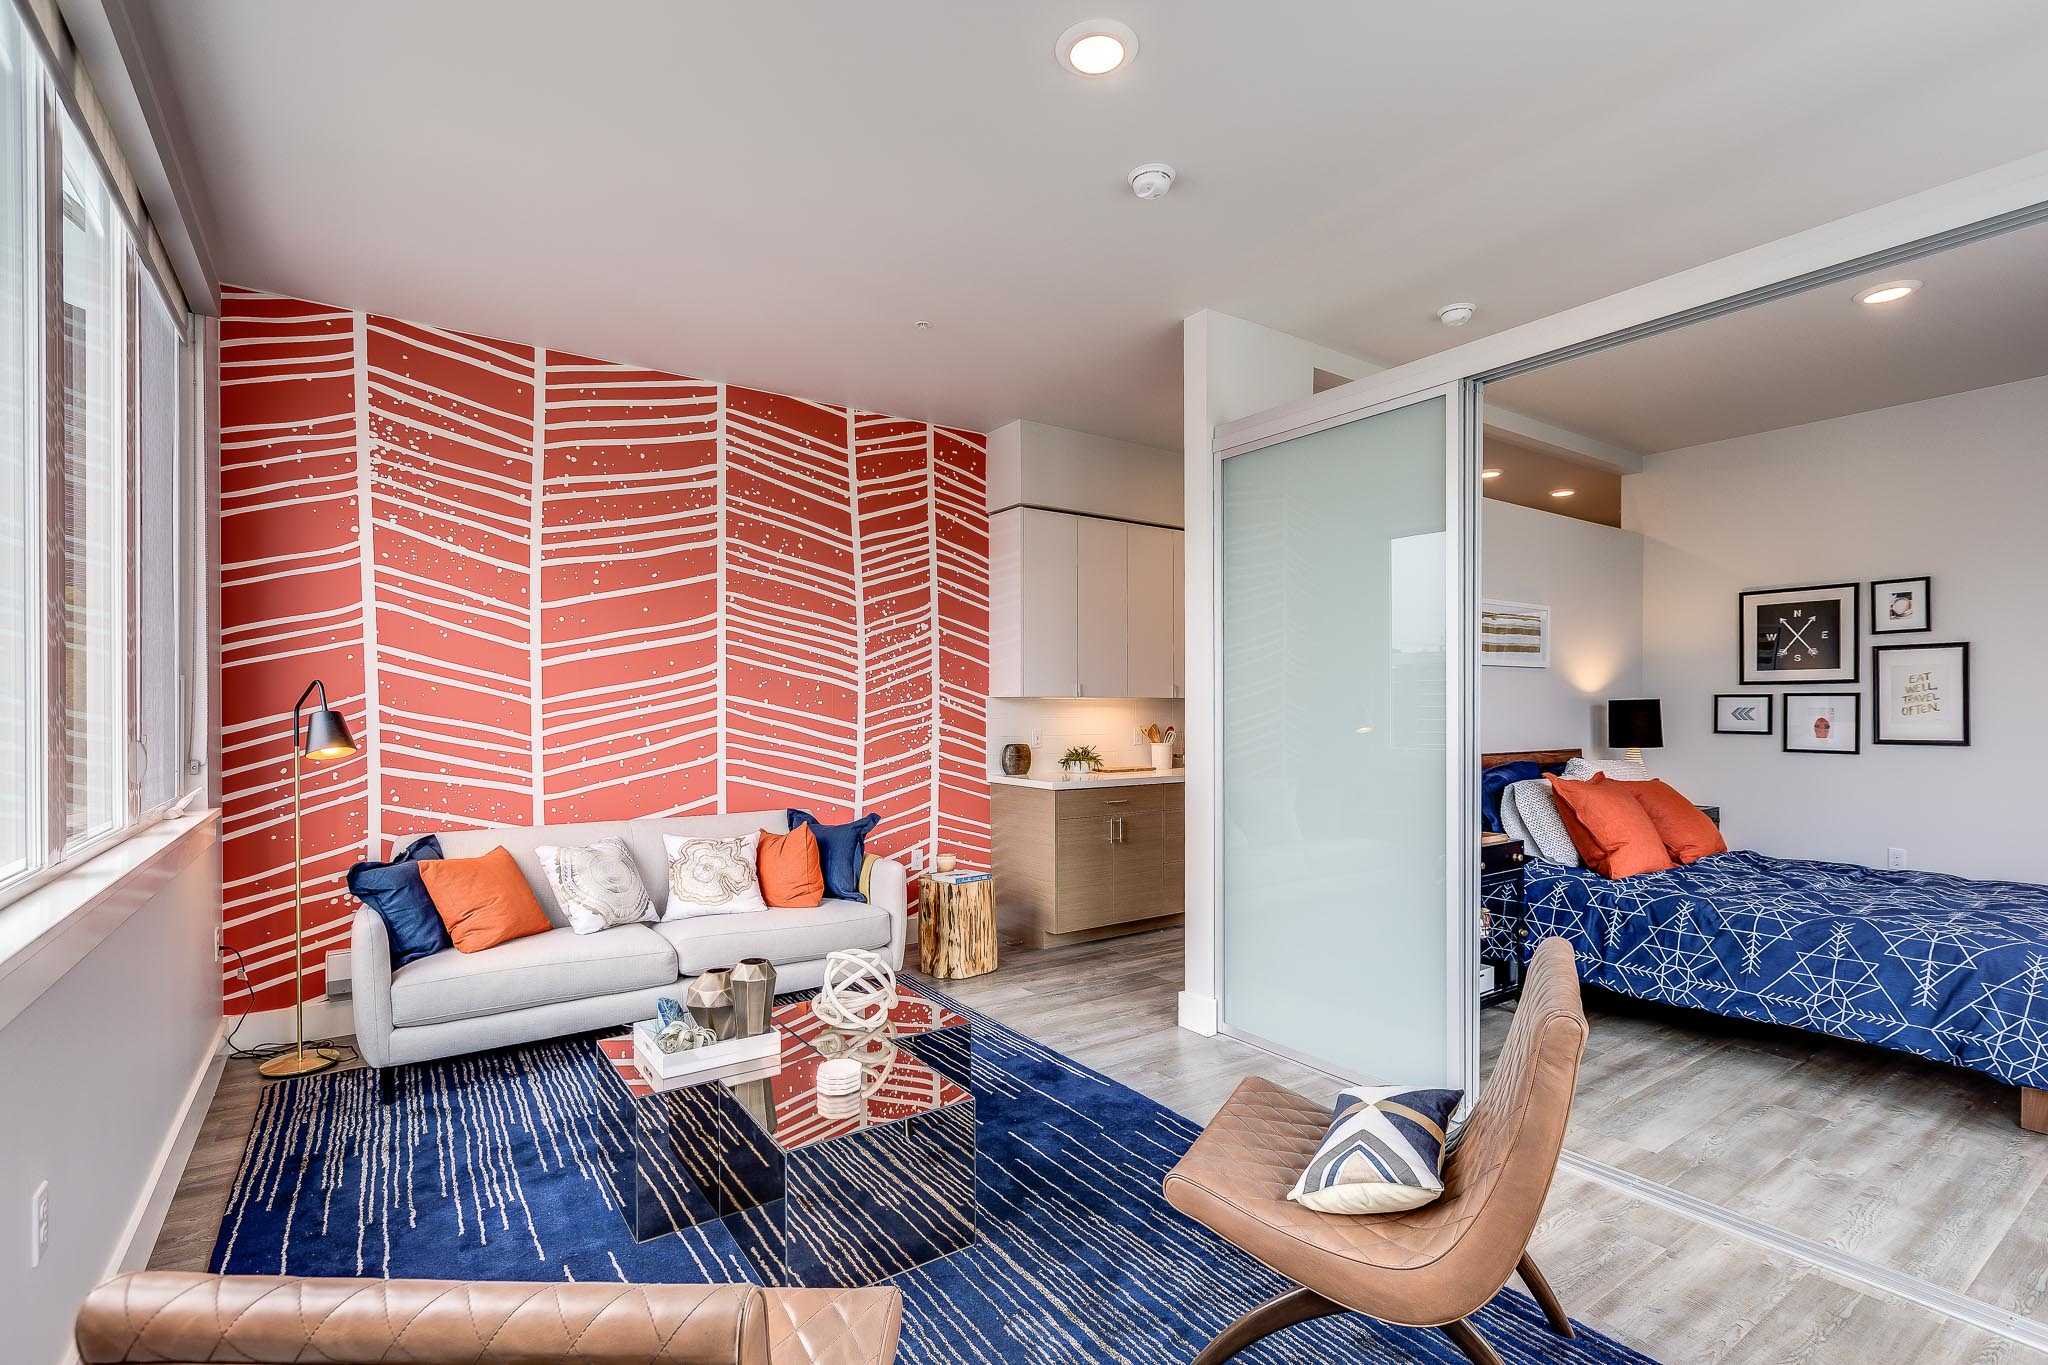 Modern Studio Apartment with blue and orange accent colors